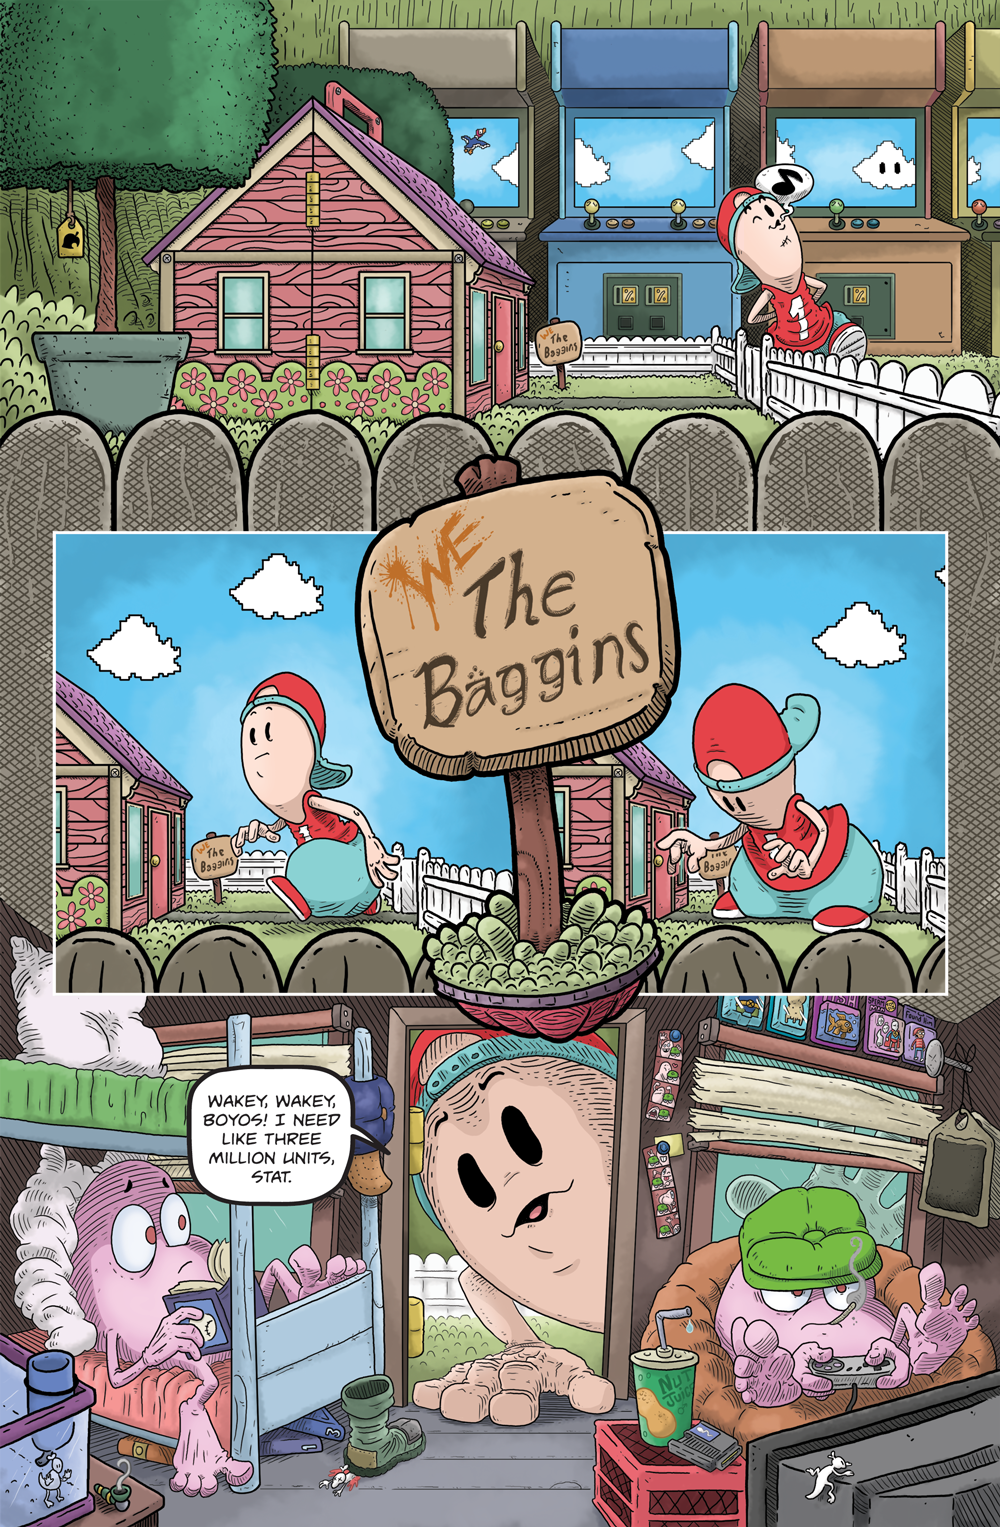 Book 4, Page 1 (Behind the Scenes)